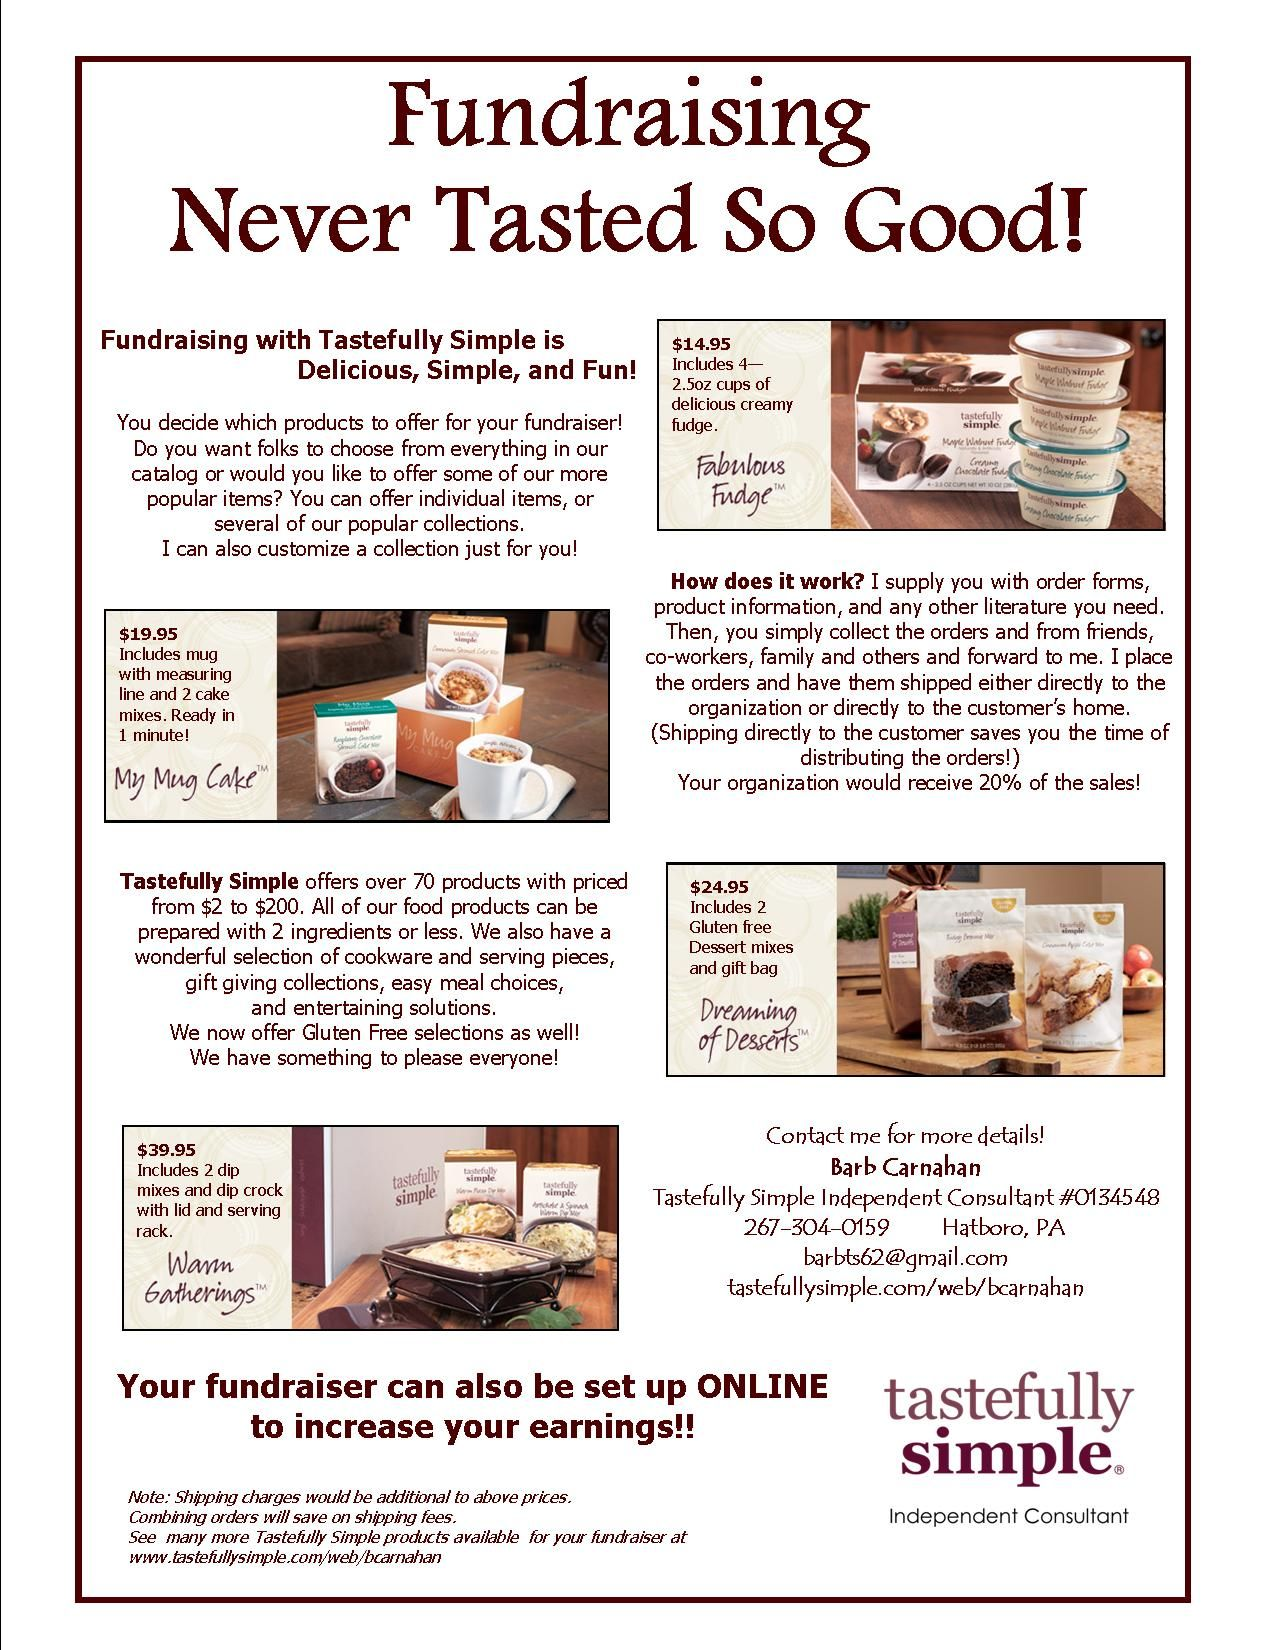 Interested in a Tastefully Simple Fundraiser Contact me for